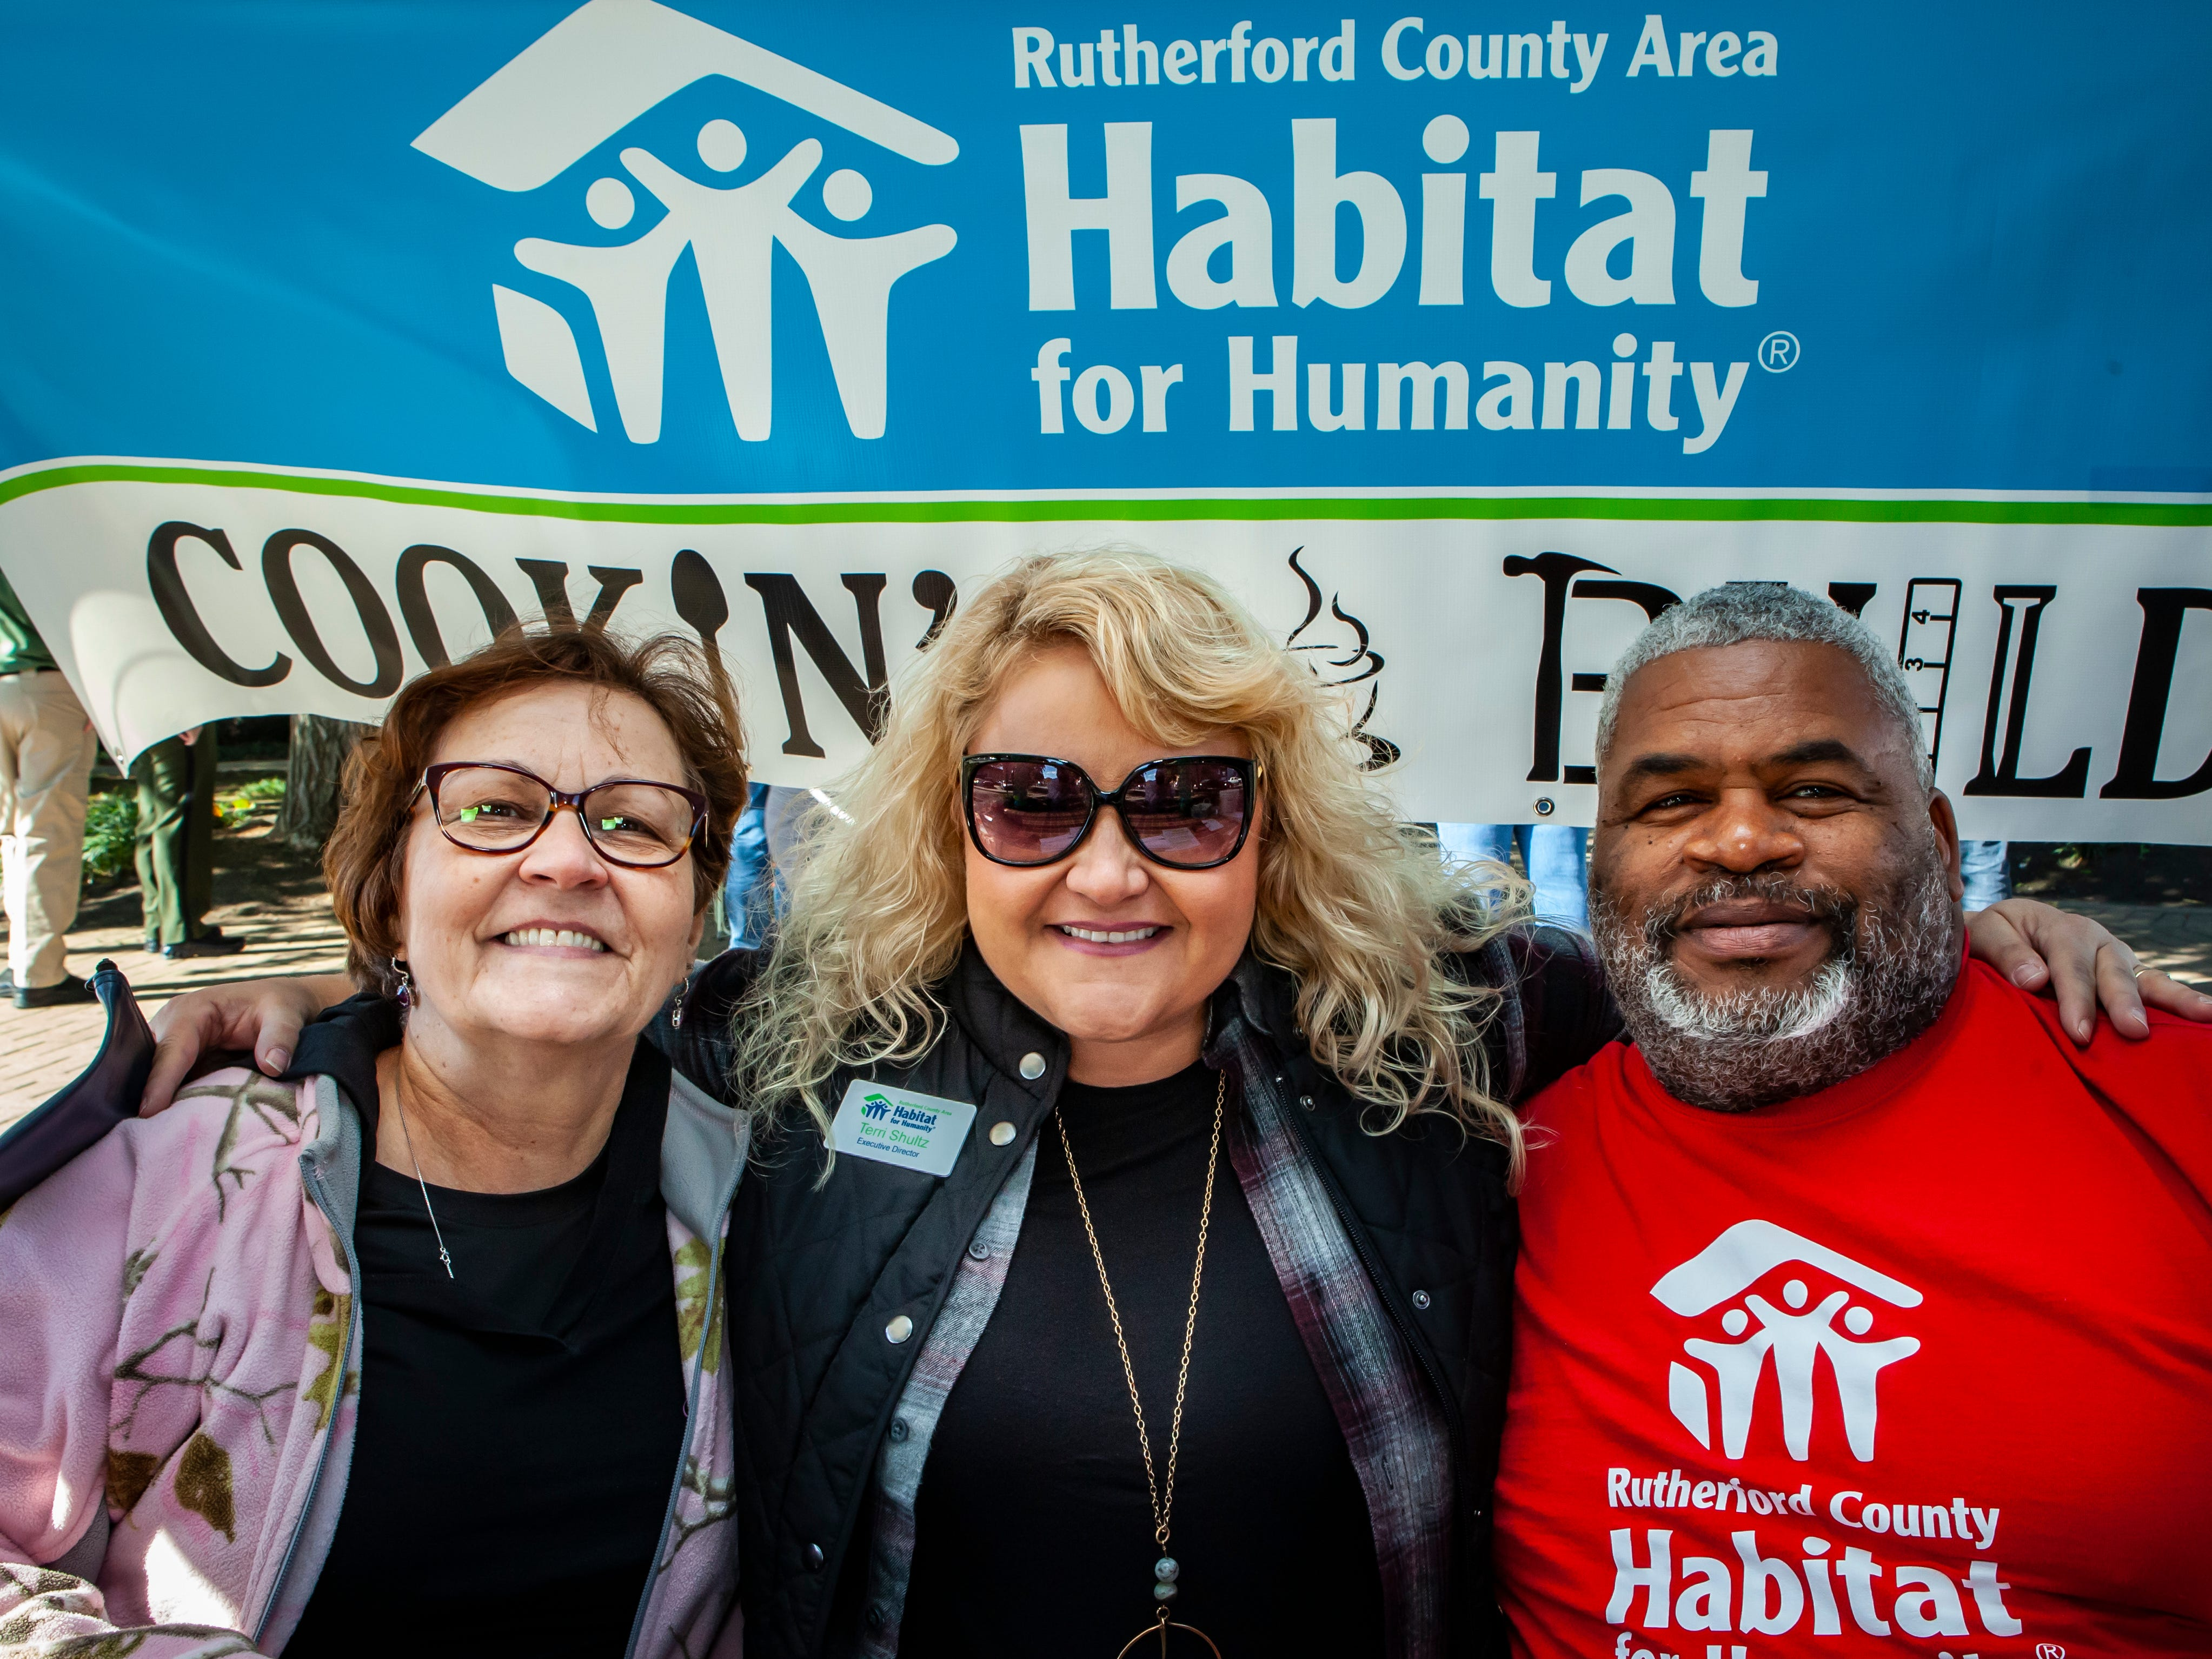 Joann Hunter, Terri Shultz and Thomas Keith at Rutherford County Habitat for Humanity's 2018 Cookin' to Build fundraiser on Saturday, Nov. 3, 2018.